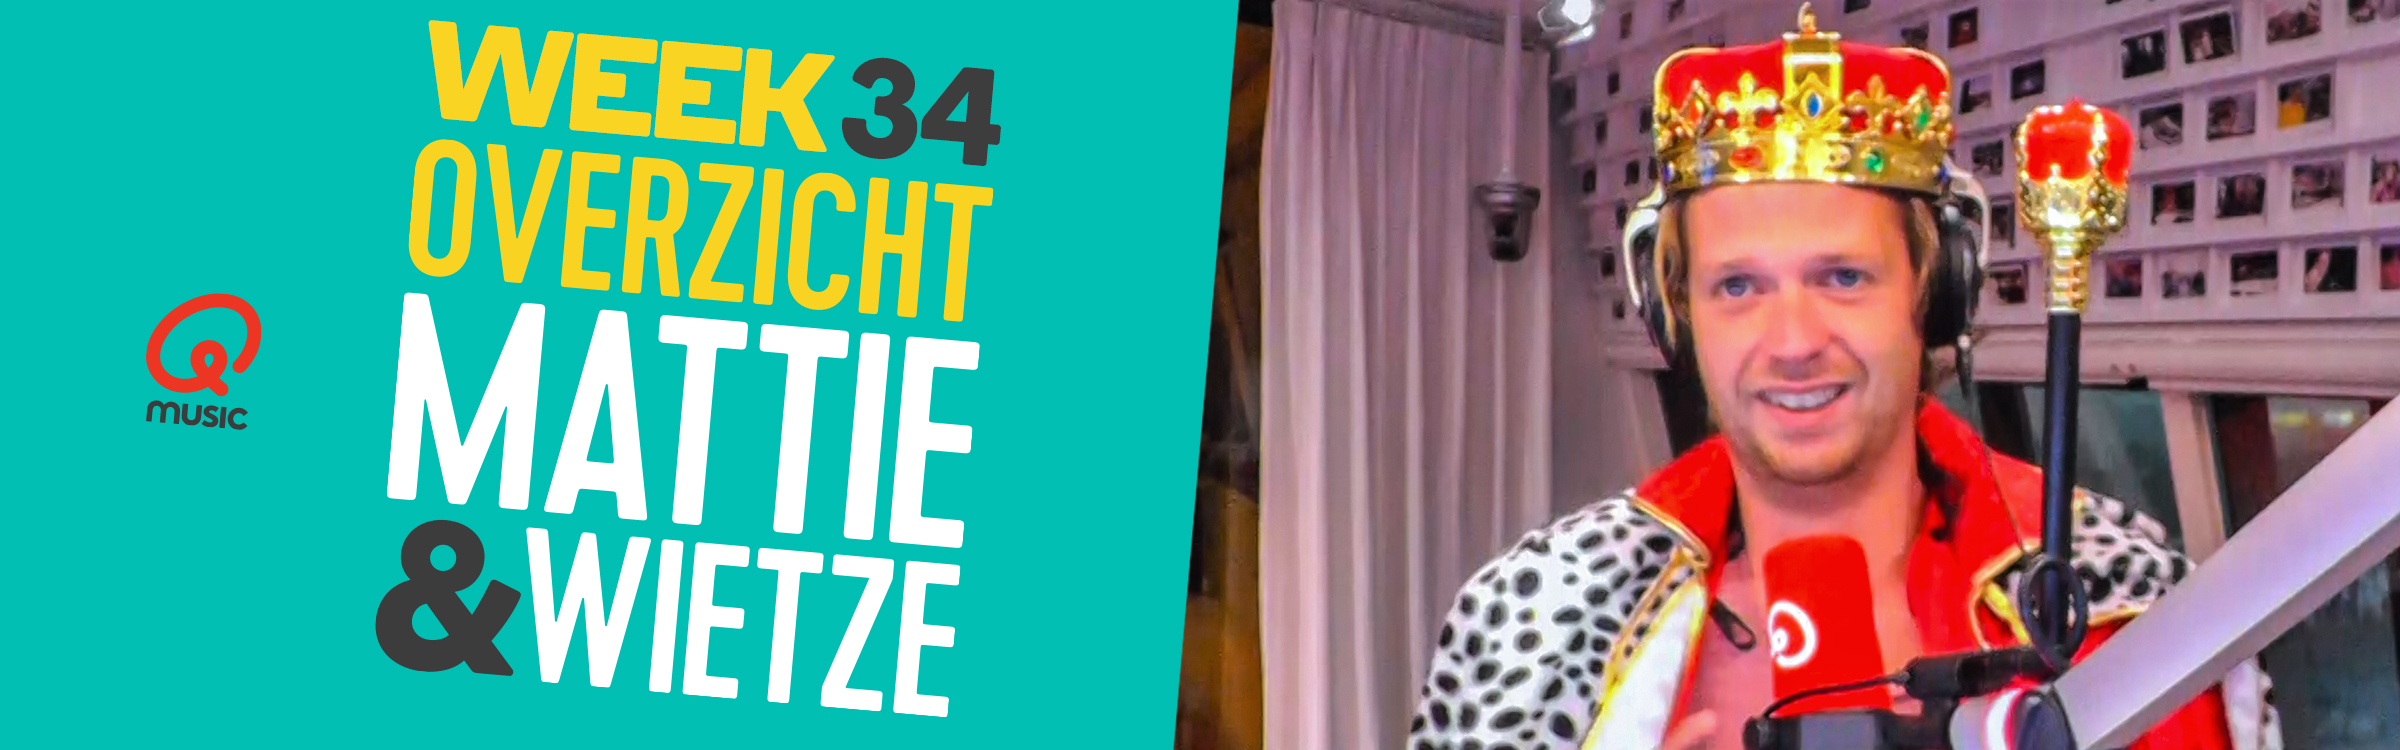 Mattiewietze weekoverzicht header